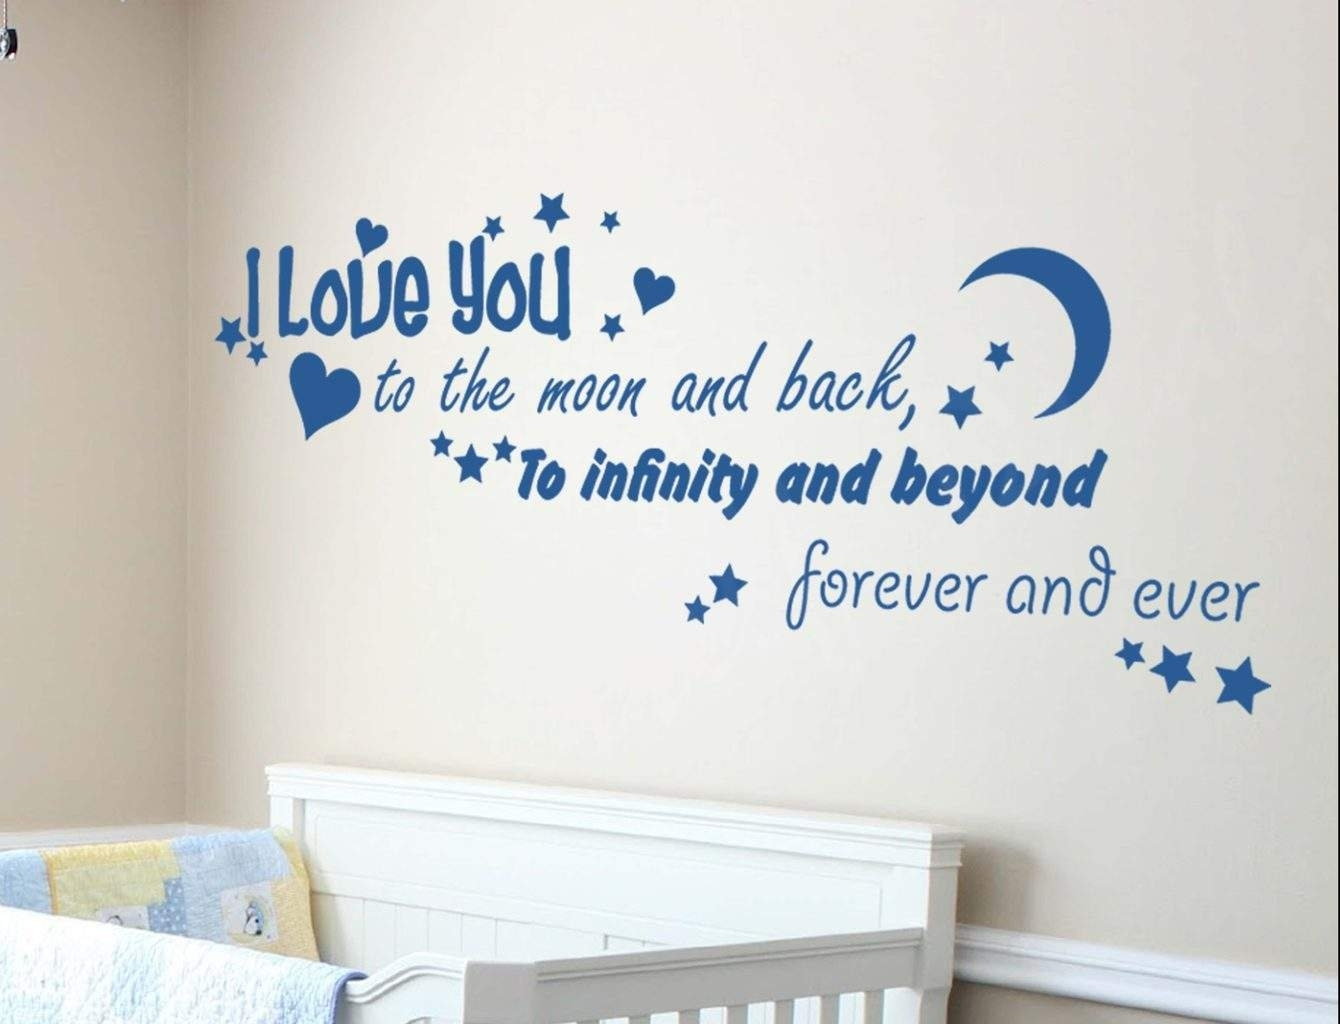 Spread Love With Love Based Wall Decals Within Most Current I Love You To The Moon And Back Wall Art (View 8 of 20)